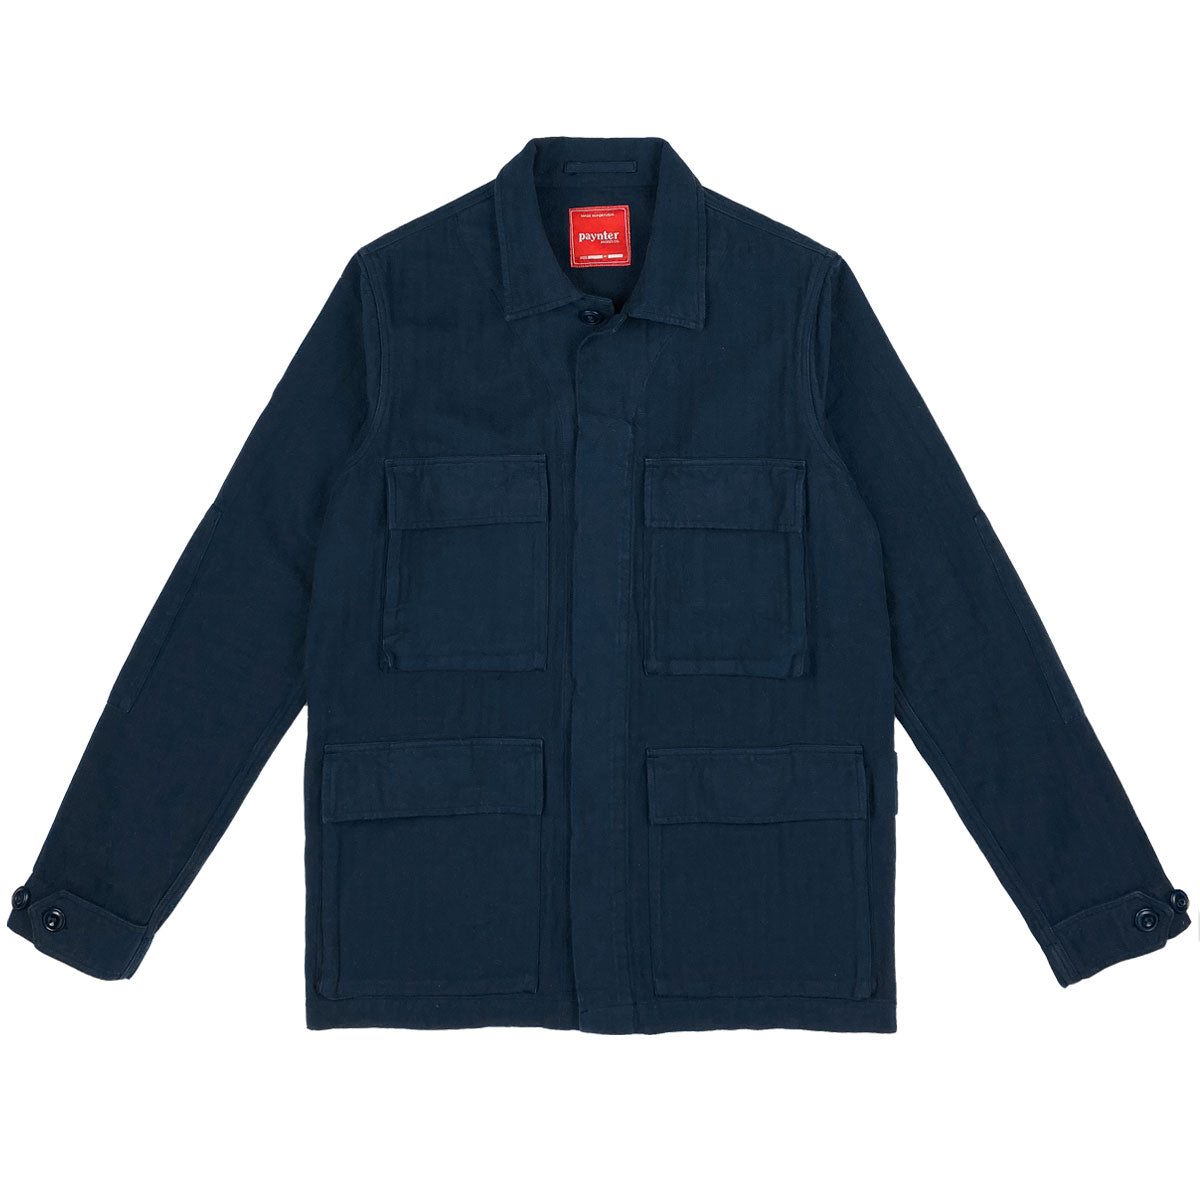 Paynter Jacket Co's Batch No.3 - The Field Jacket. Limited Edition. Label designed by Ilya Milstein. Deep Navy. Portuguese Herringbone.